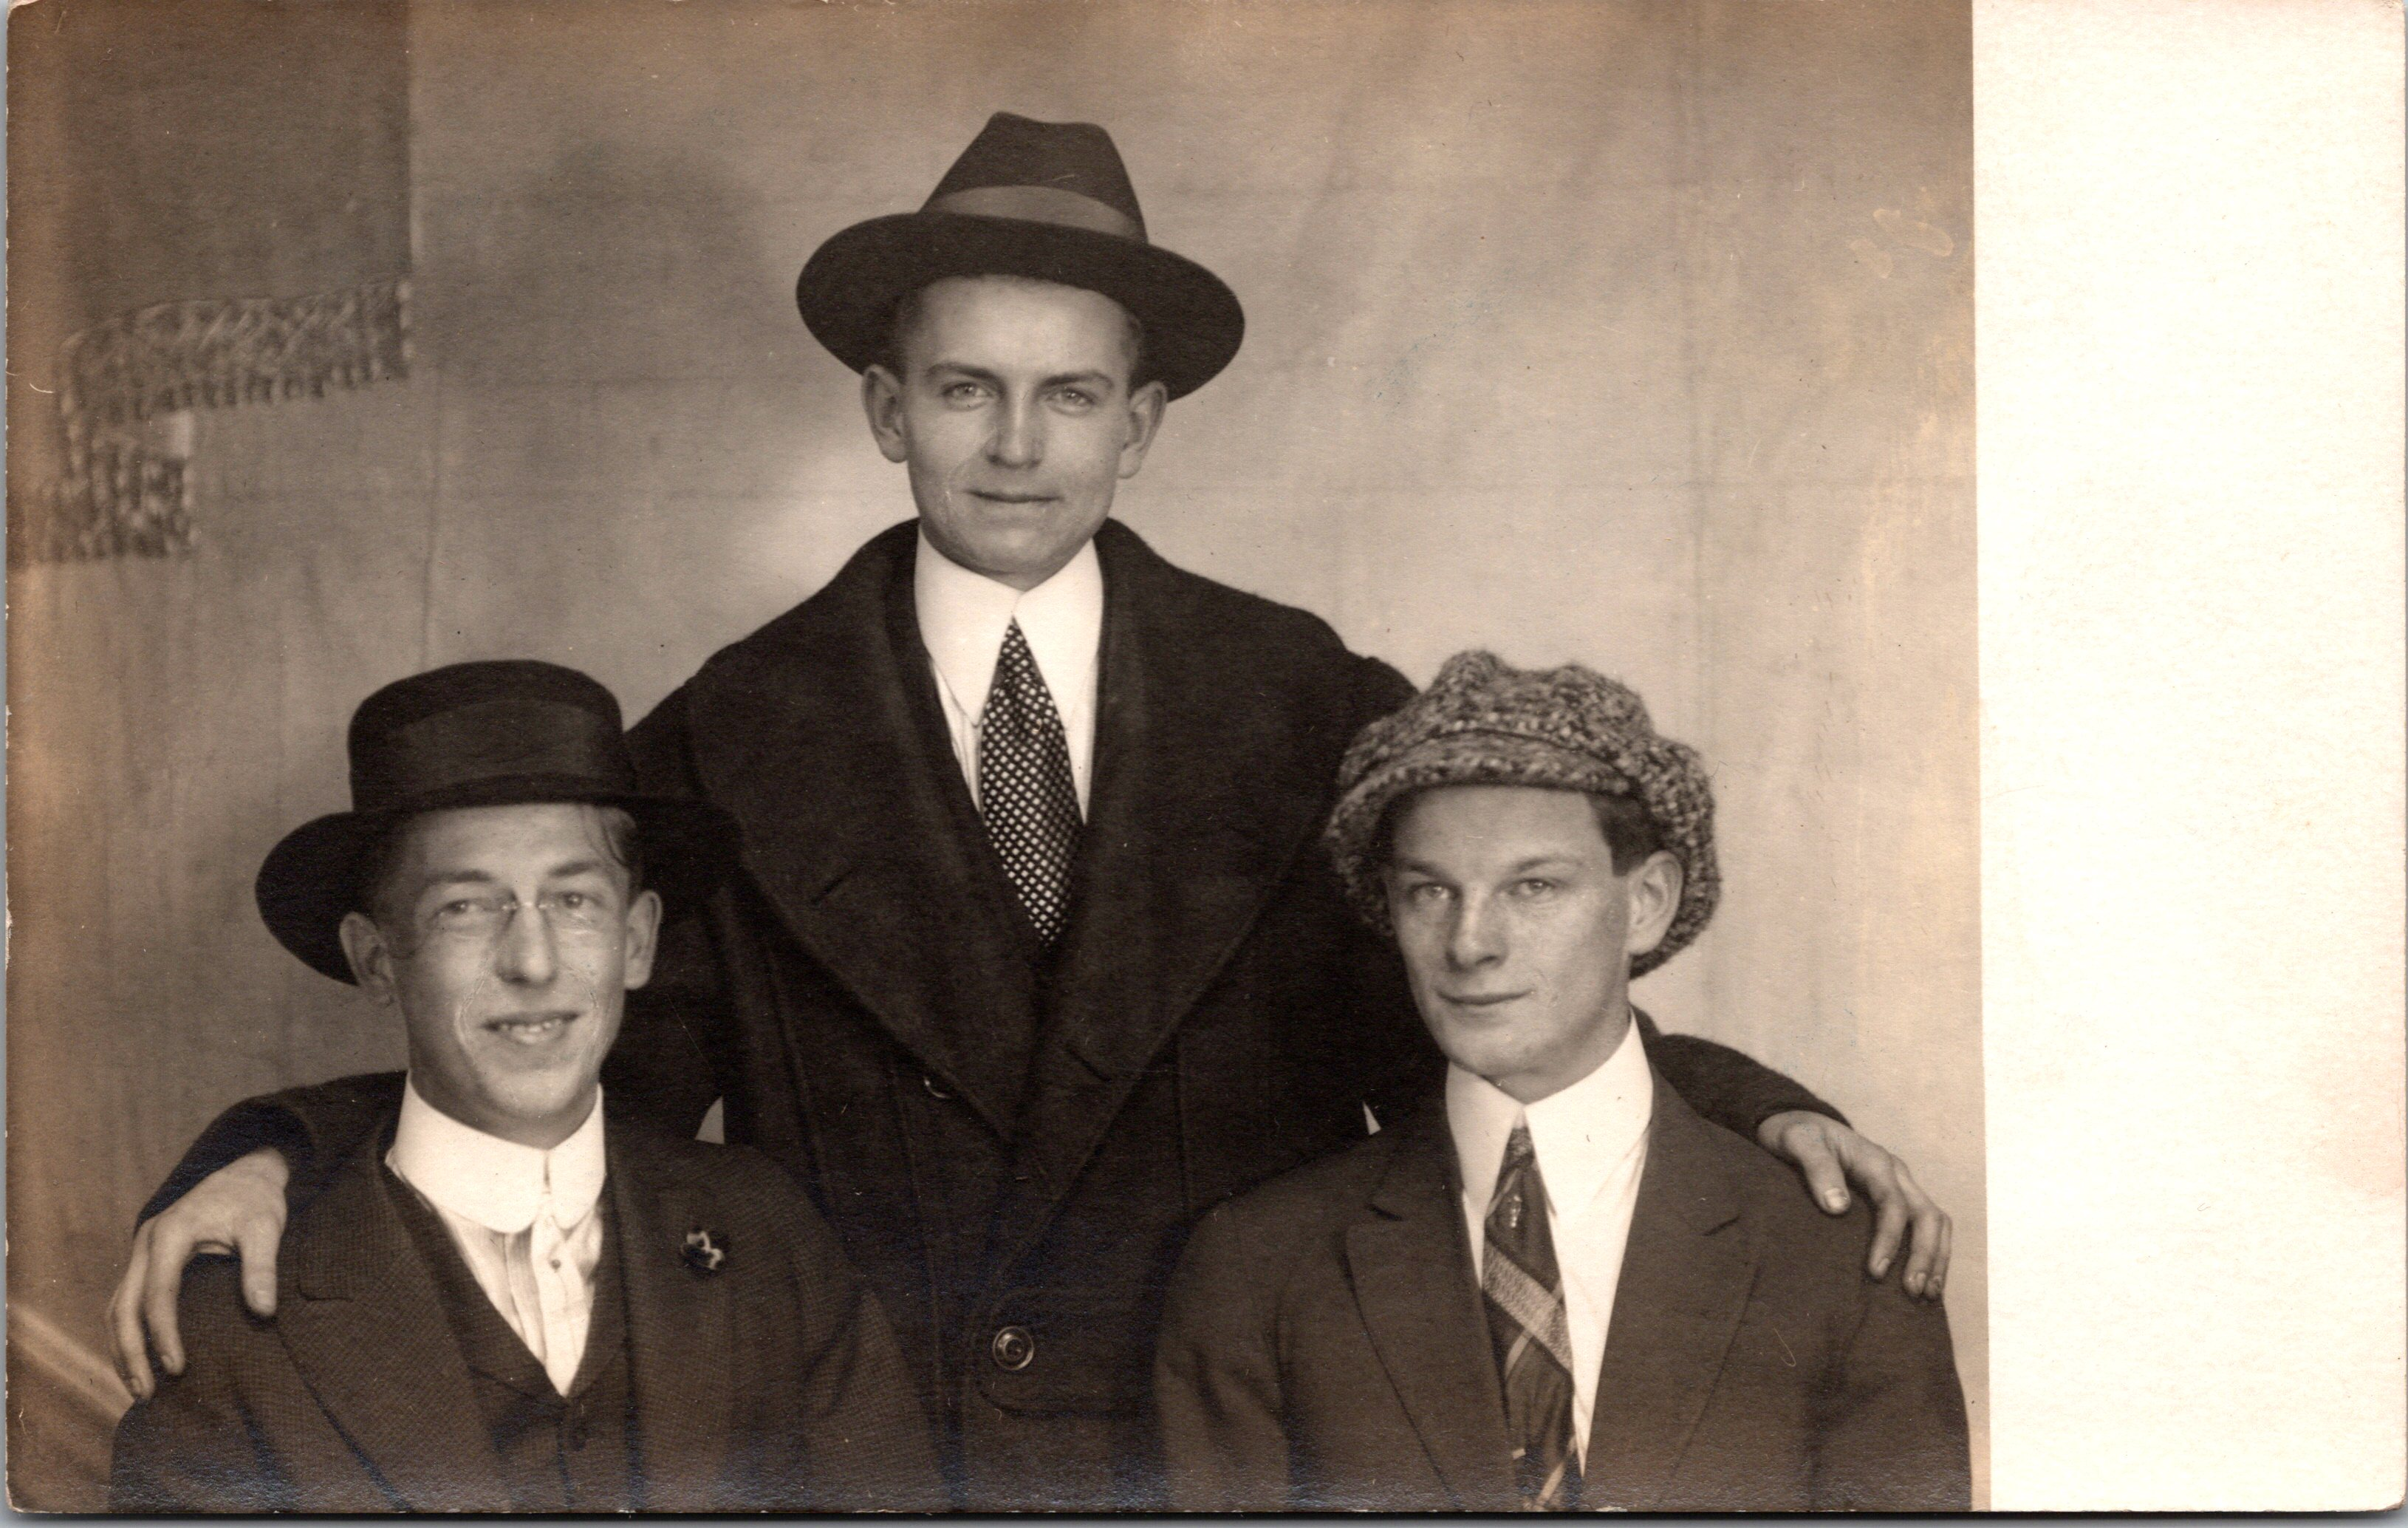 men-and-hats_0001-2